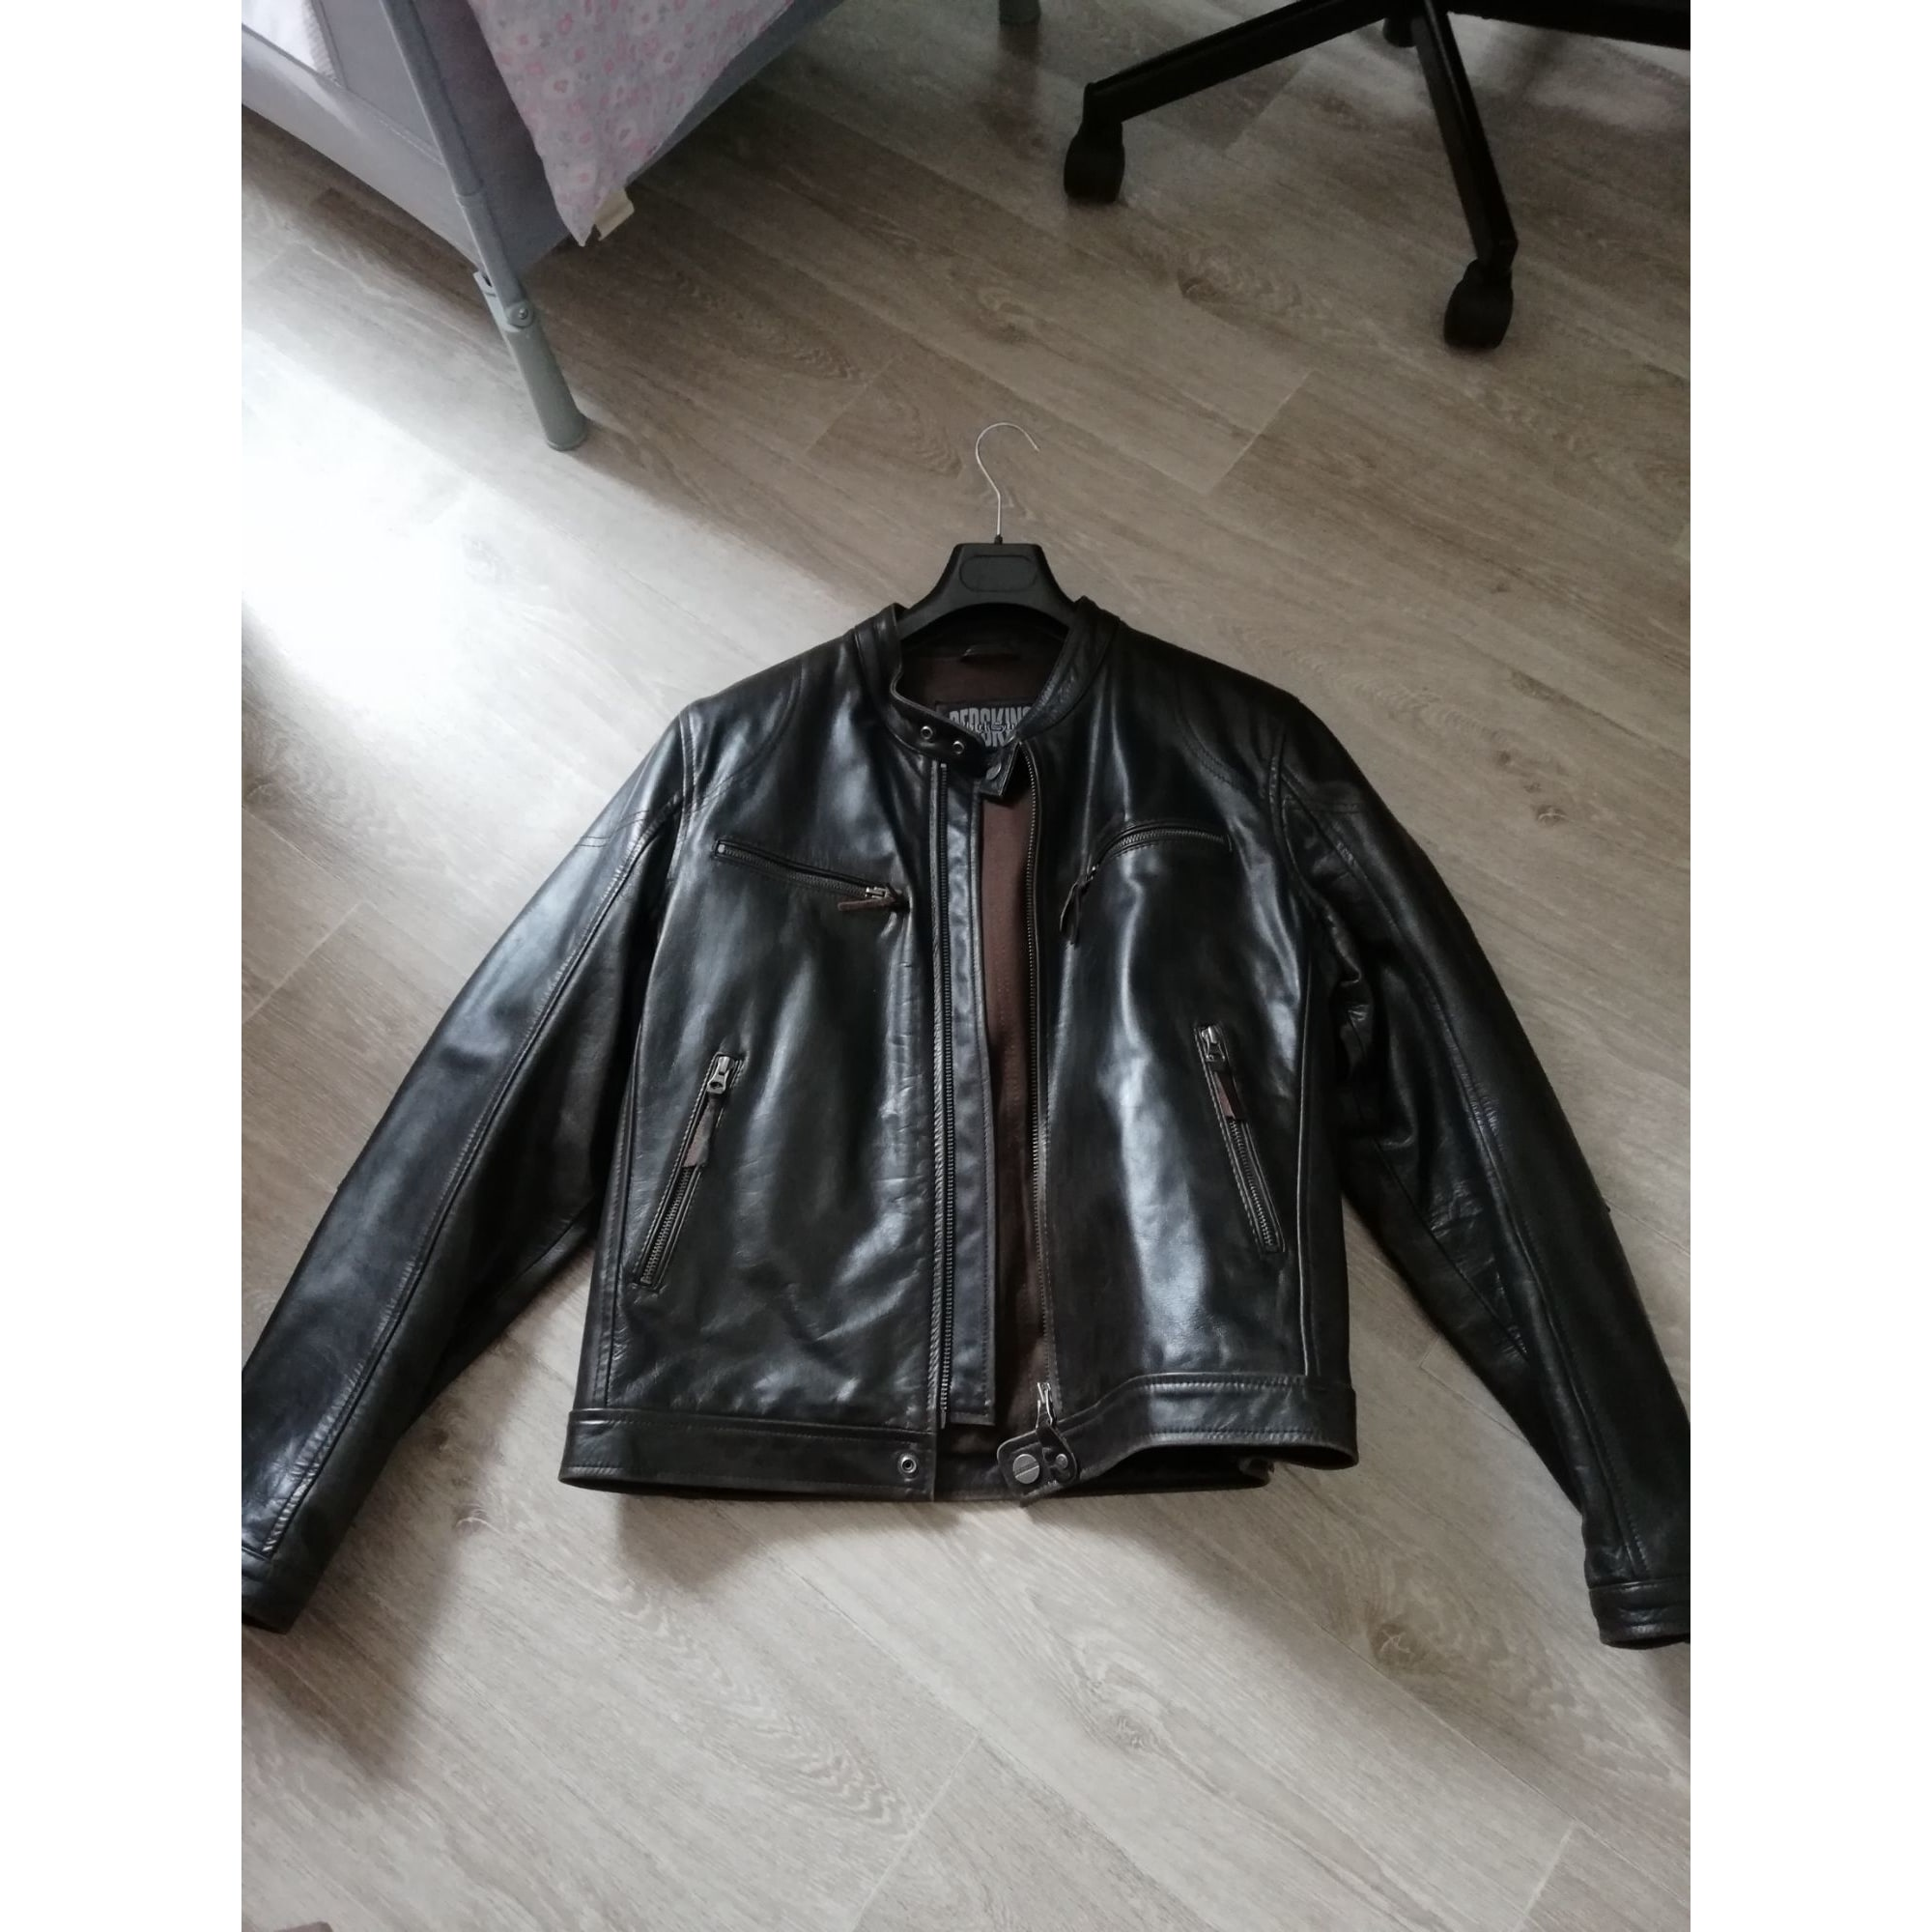 Blouson en cuir REDSKINS BLACK STONE 56 (XL) marron 8768090